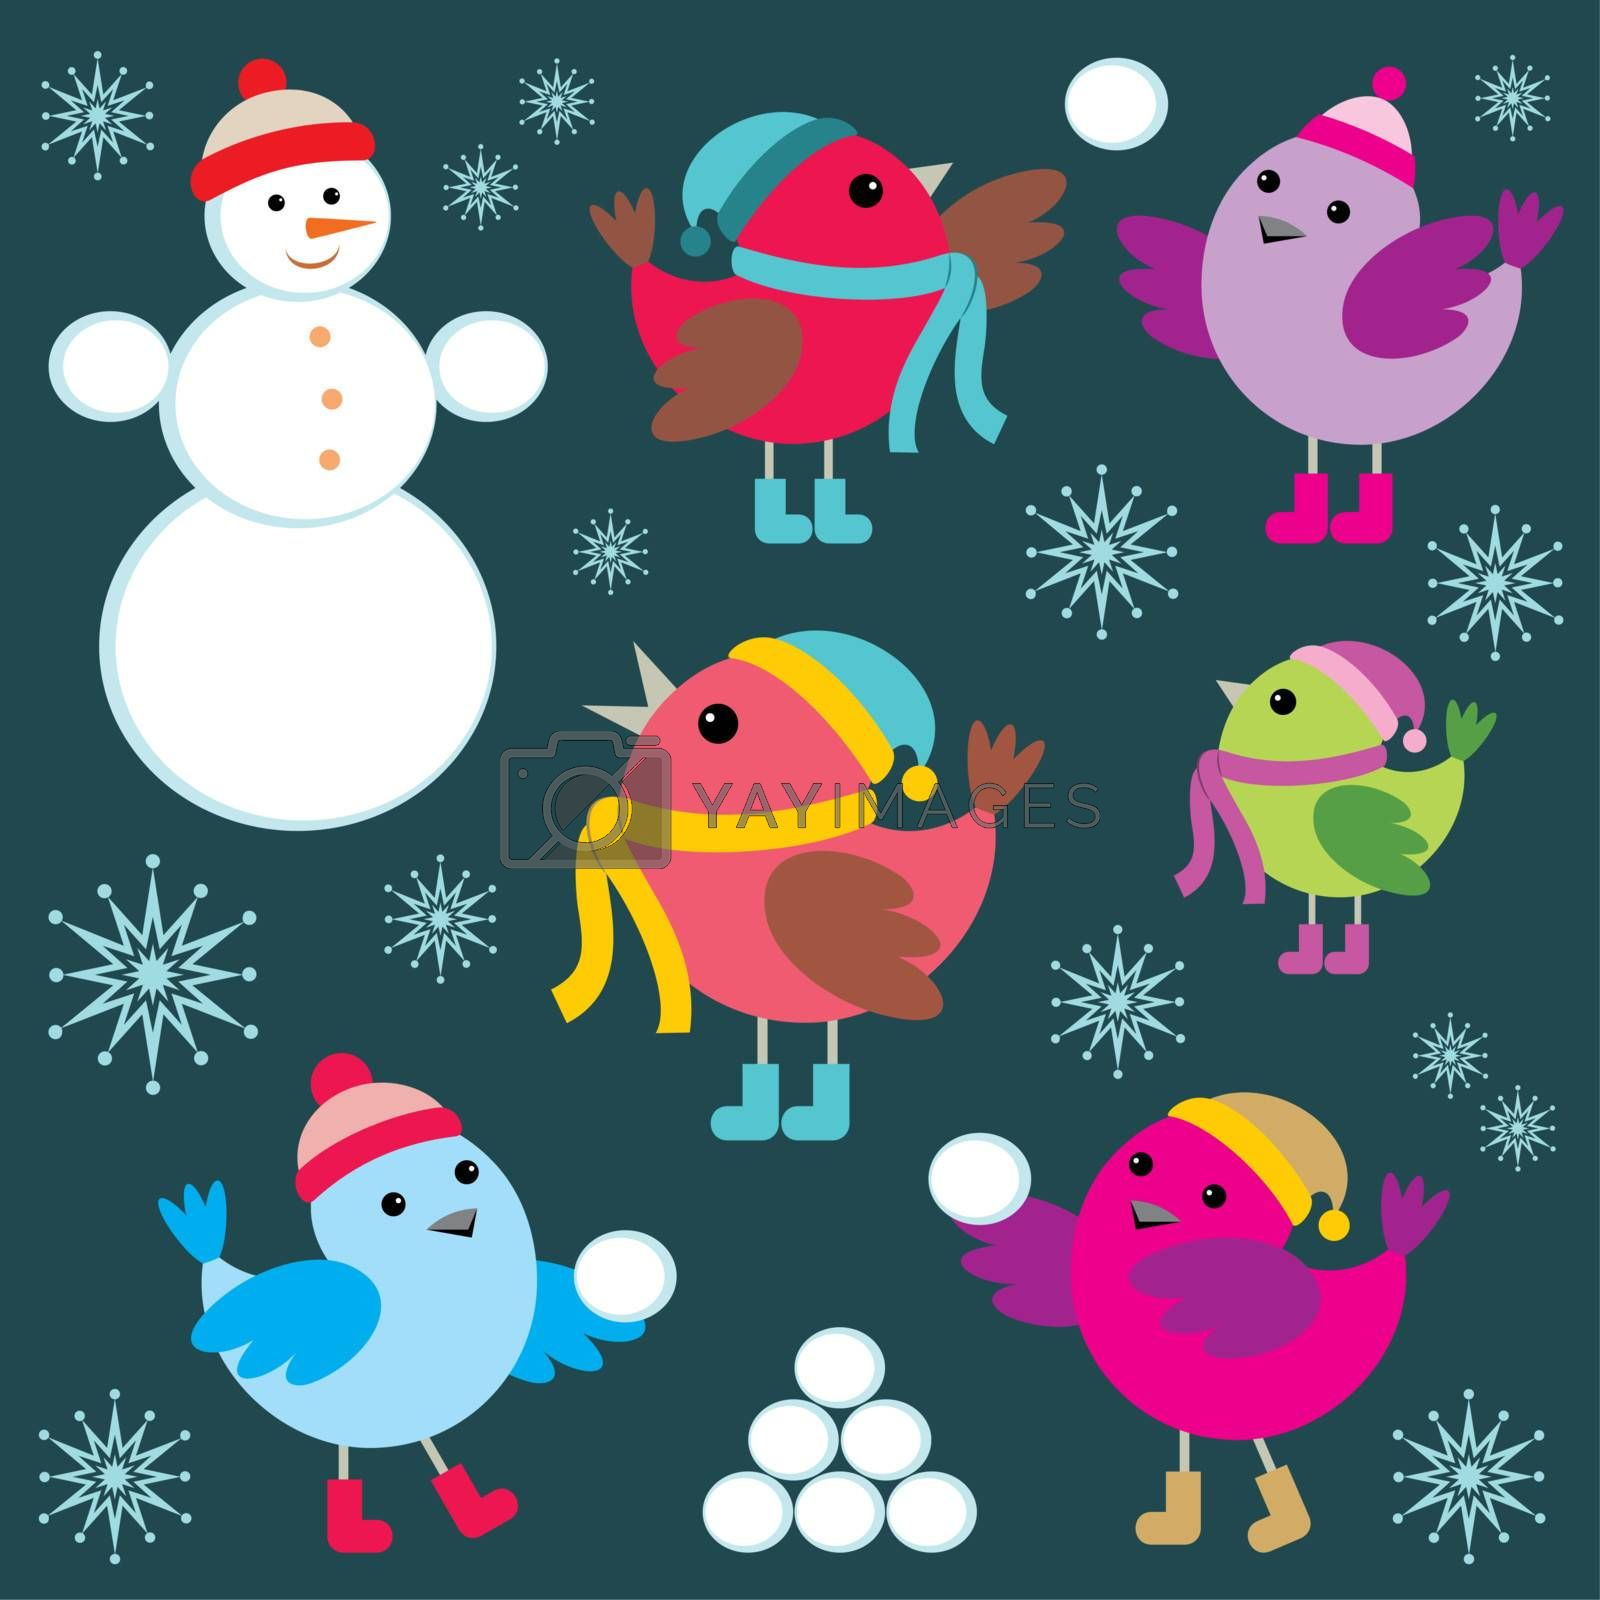 Image set of birds and a snowman for holiday cards.